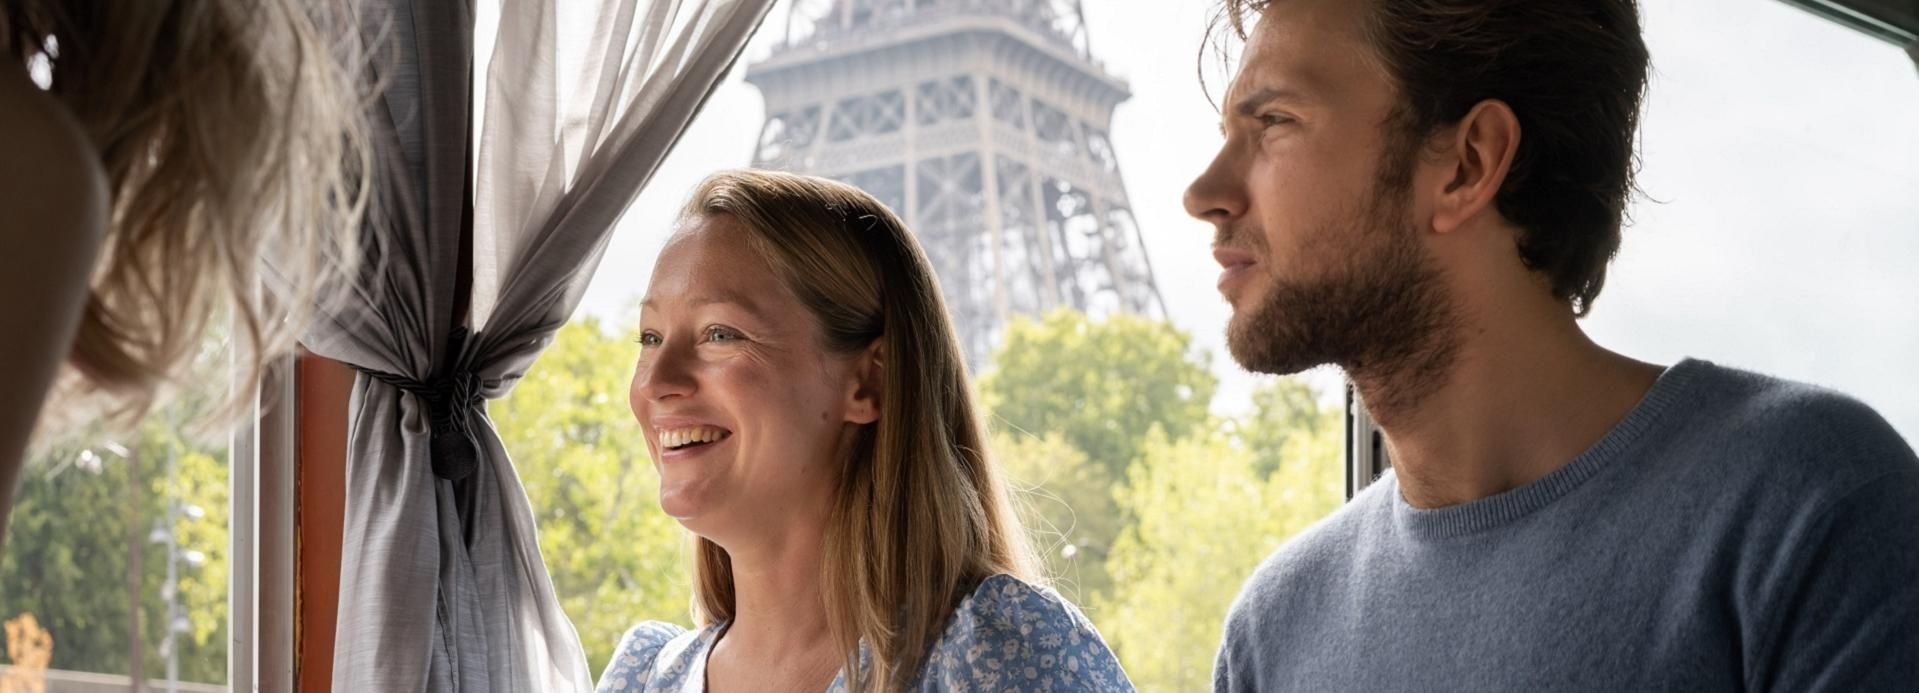 Paris: 3-Course Lunch Cruise on the River Seine